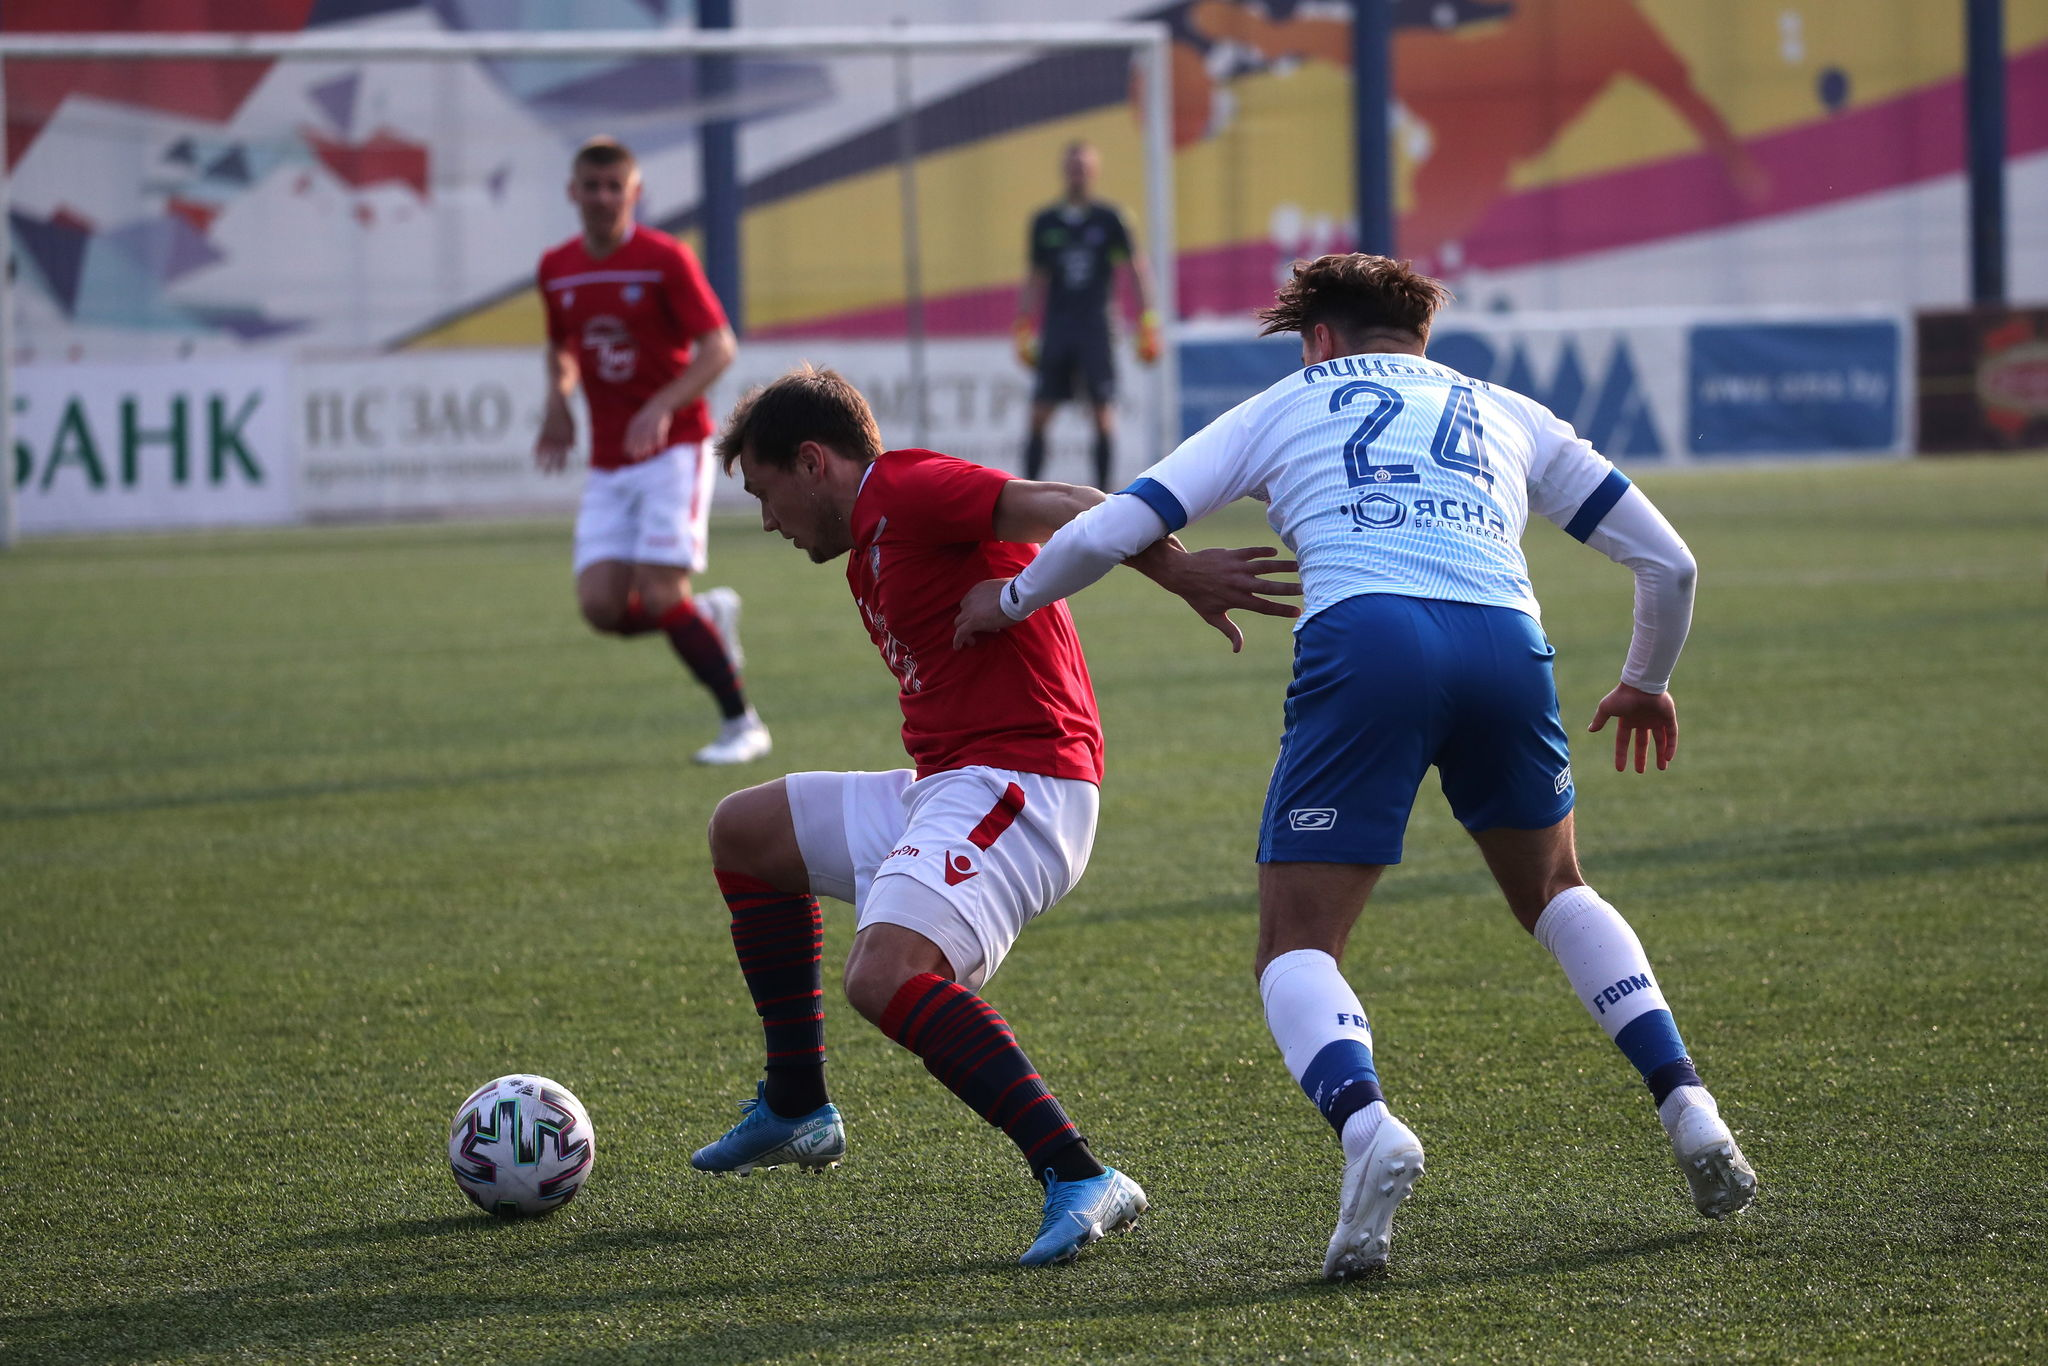 Minsk ( lt;HIT gt;Belarus lt;/HIT gt;), 28/03/2020.- Players are in action during the Belarusian Premier League soccer match between FC Minsk and FC Dinamo-Minsk in Minsk, lt;HIT gt;Belarus lt;/HIT gt;, 28 March 2020. lt;HIT gt;Belarus lt;/HIT gt; didnt suspend soccer games, as most of European countries did because of coronavirus COVID19 pandemic. lt;HIT gt;Belarus lt;/HIT gt; plans to hold all soccer matches, as scheduled, local media reports. (Bielorrusia) EFE/EPA/TATYANA ZENKOVICH